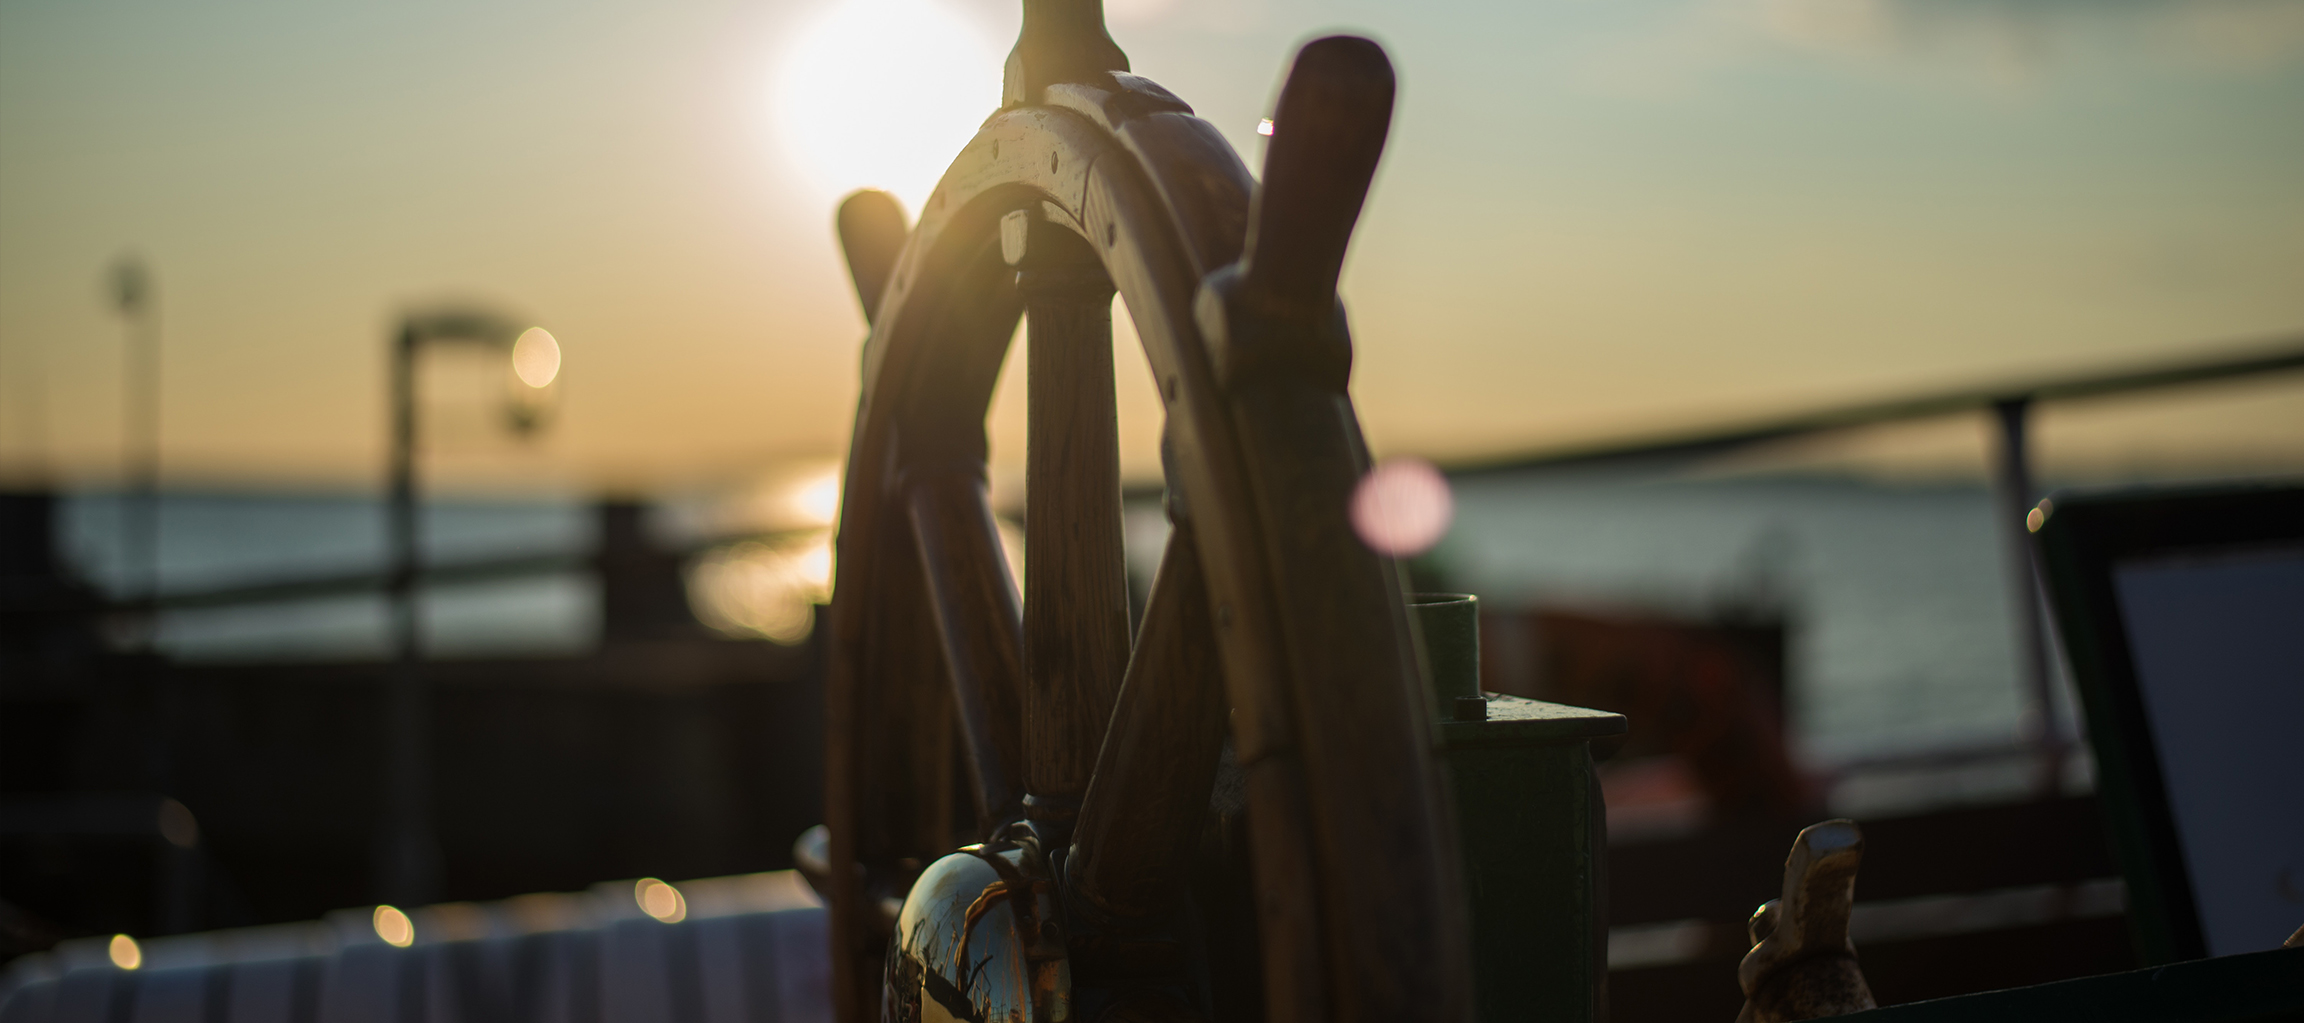 sunset image of a sailing ship's captains wheel